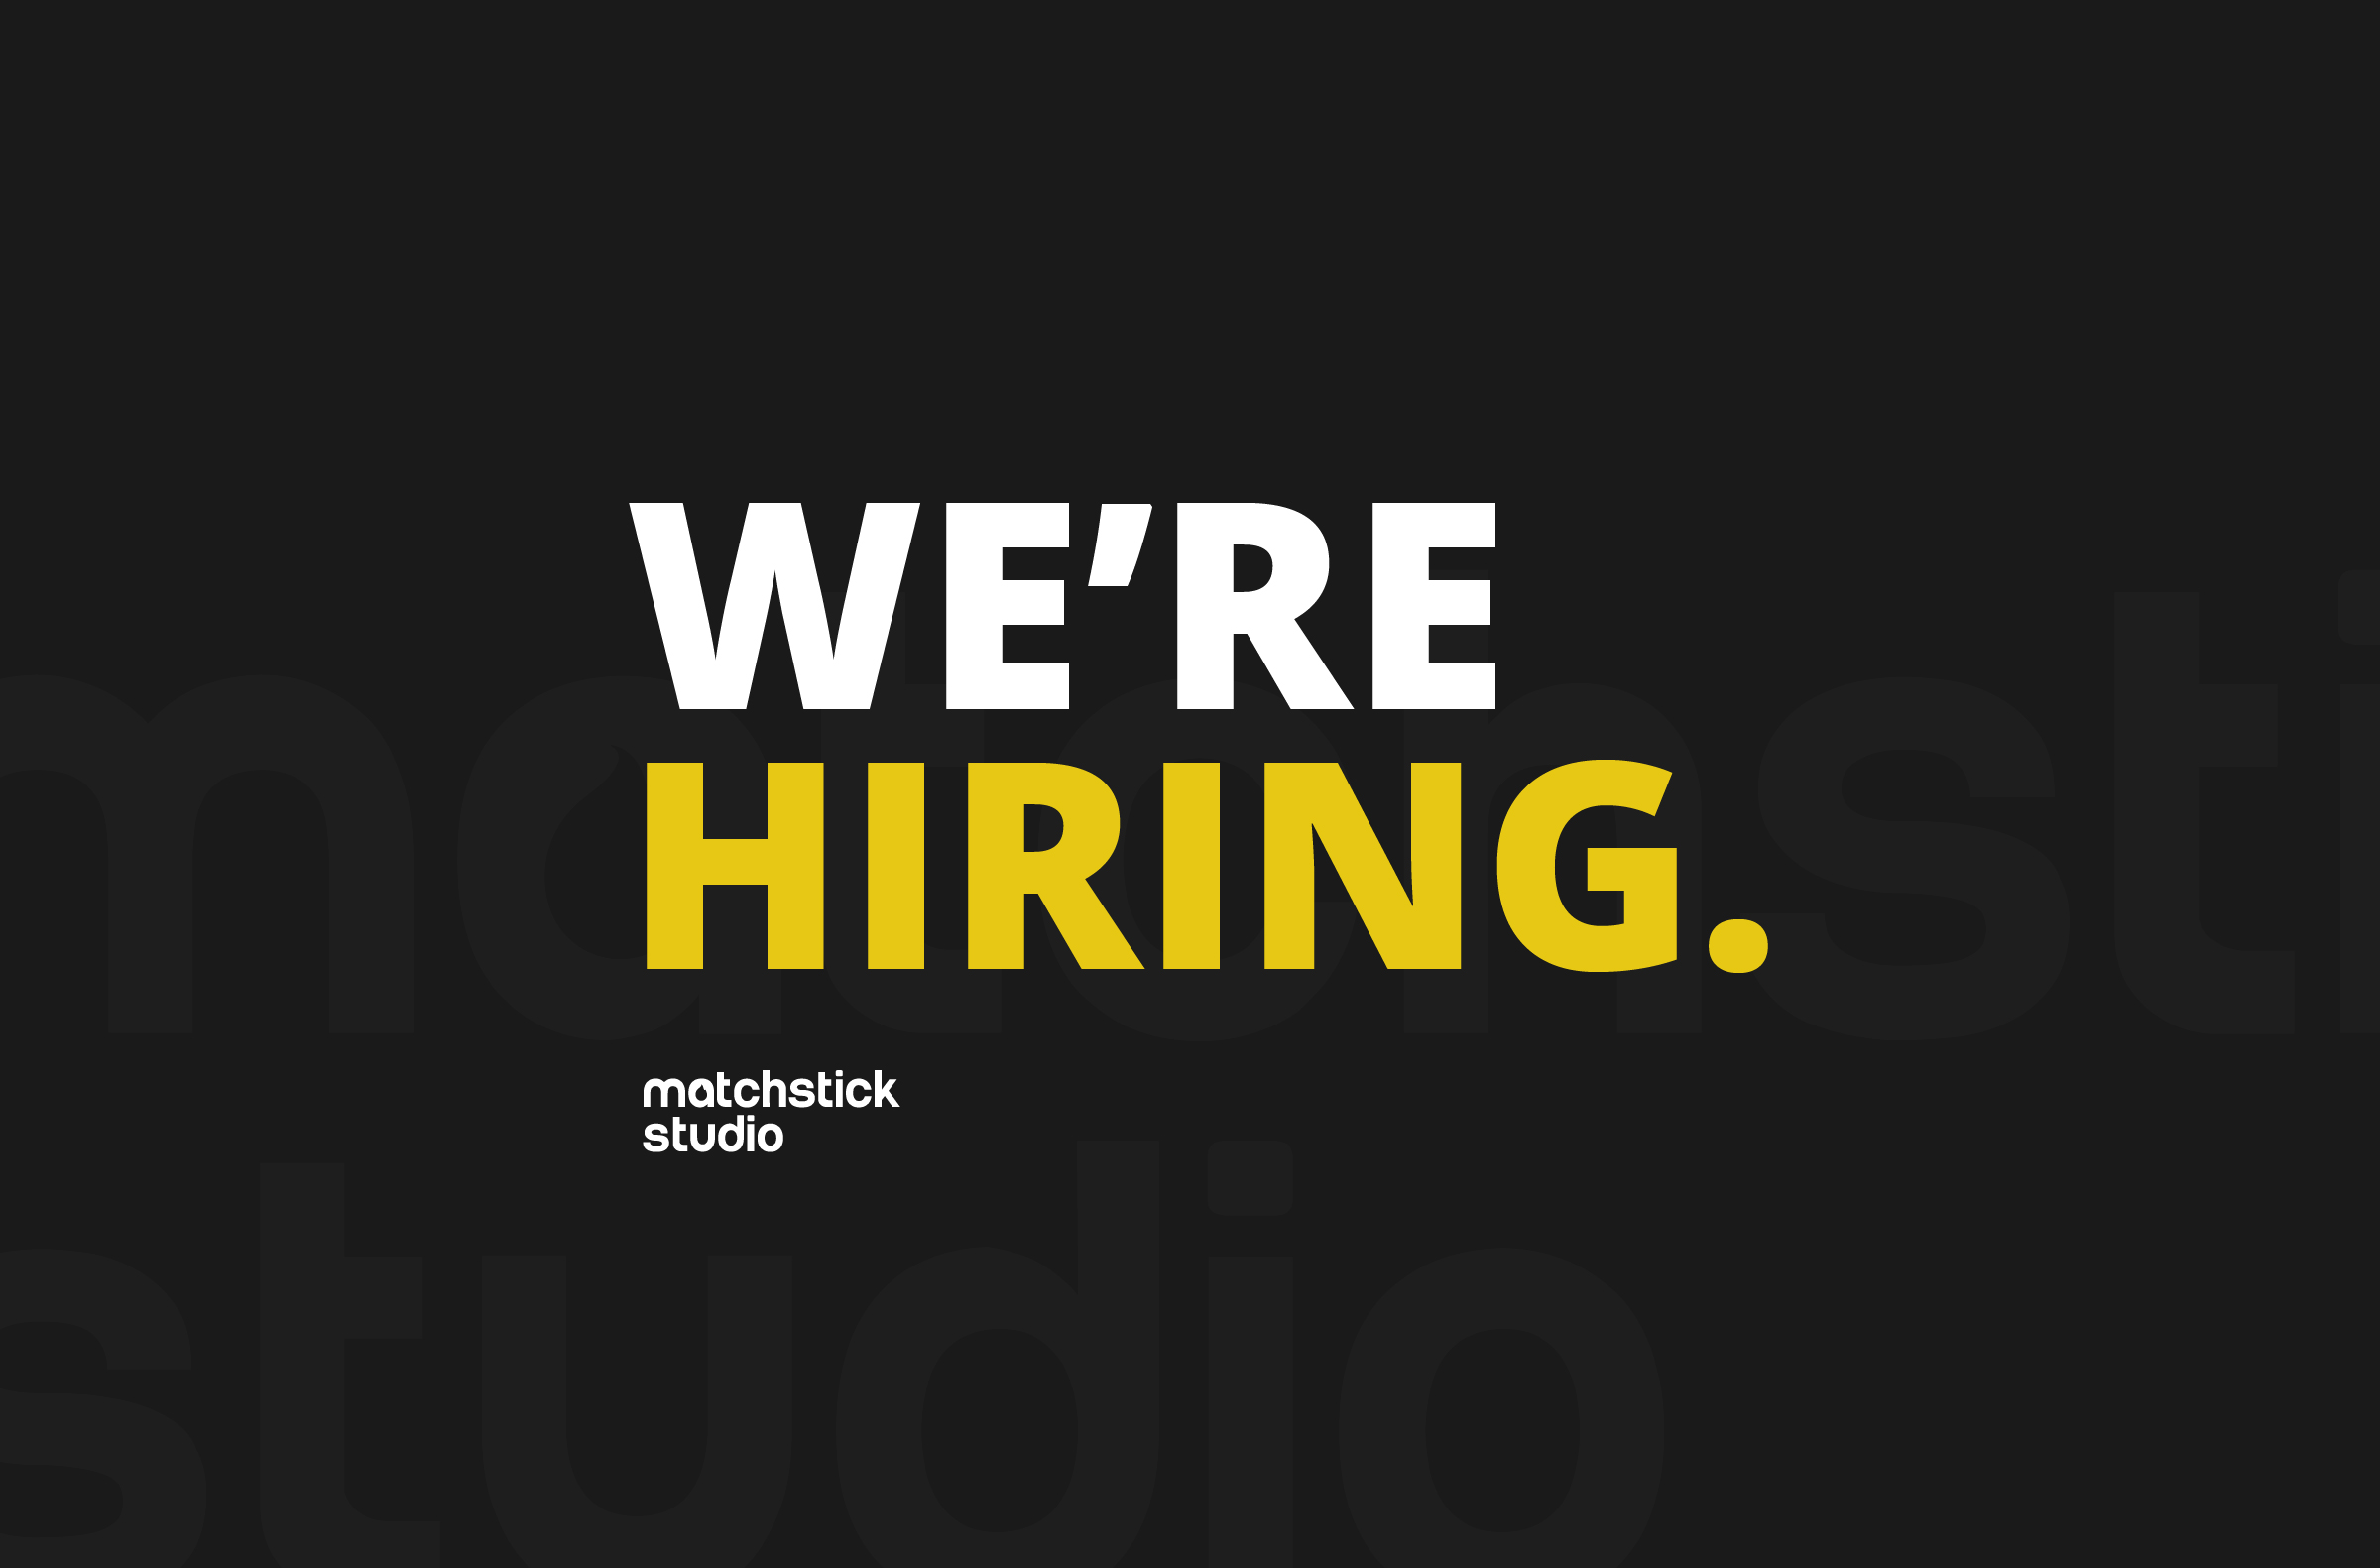 matchstick studio is hiring